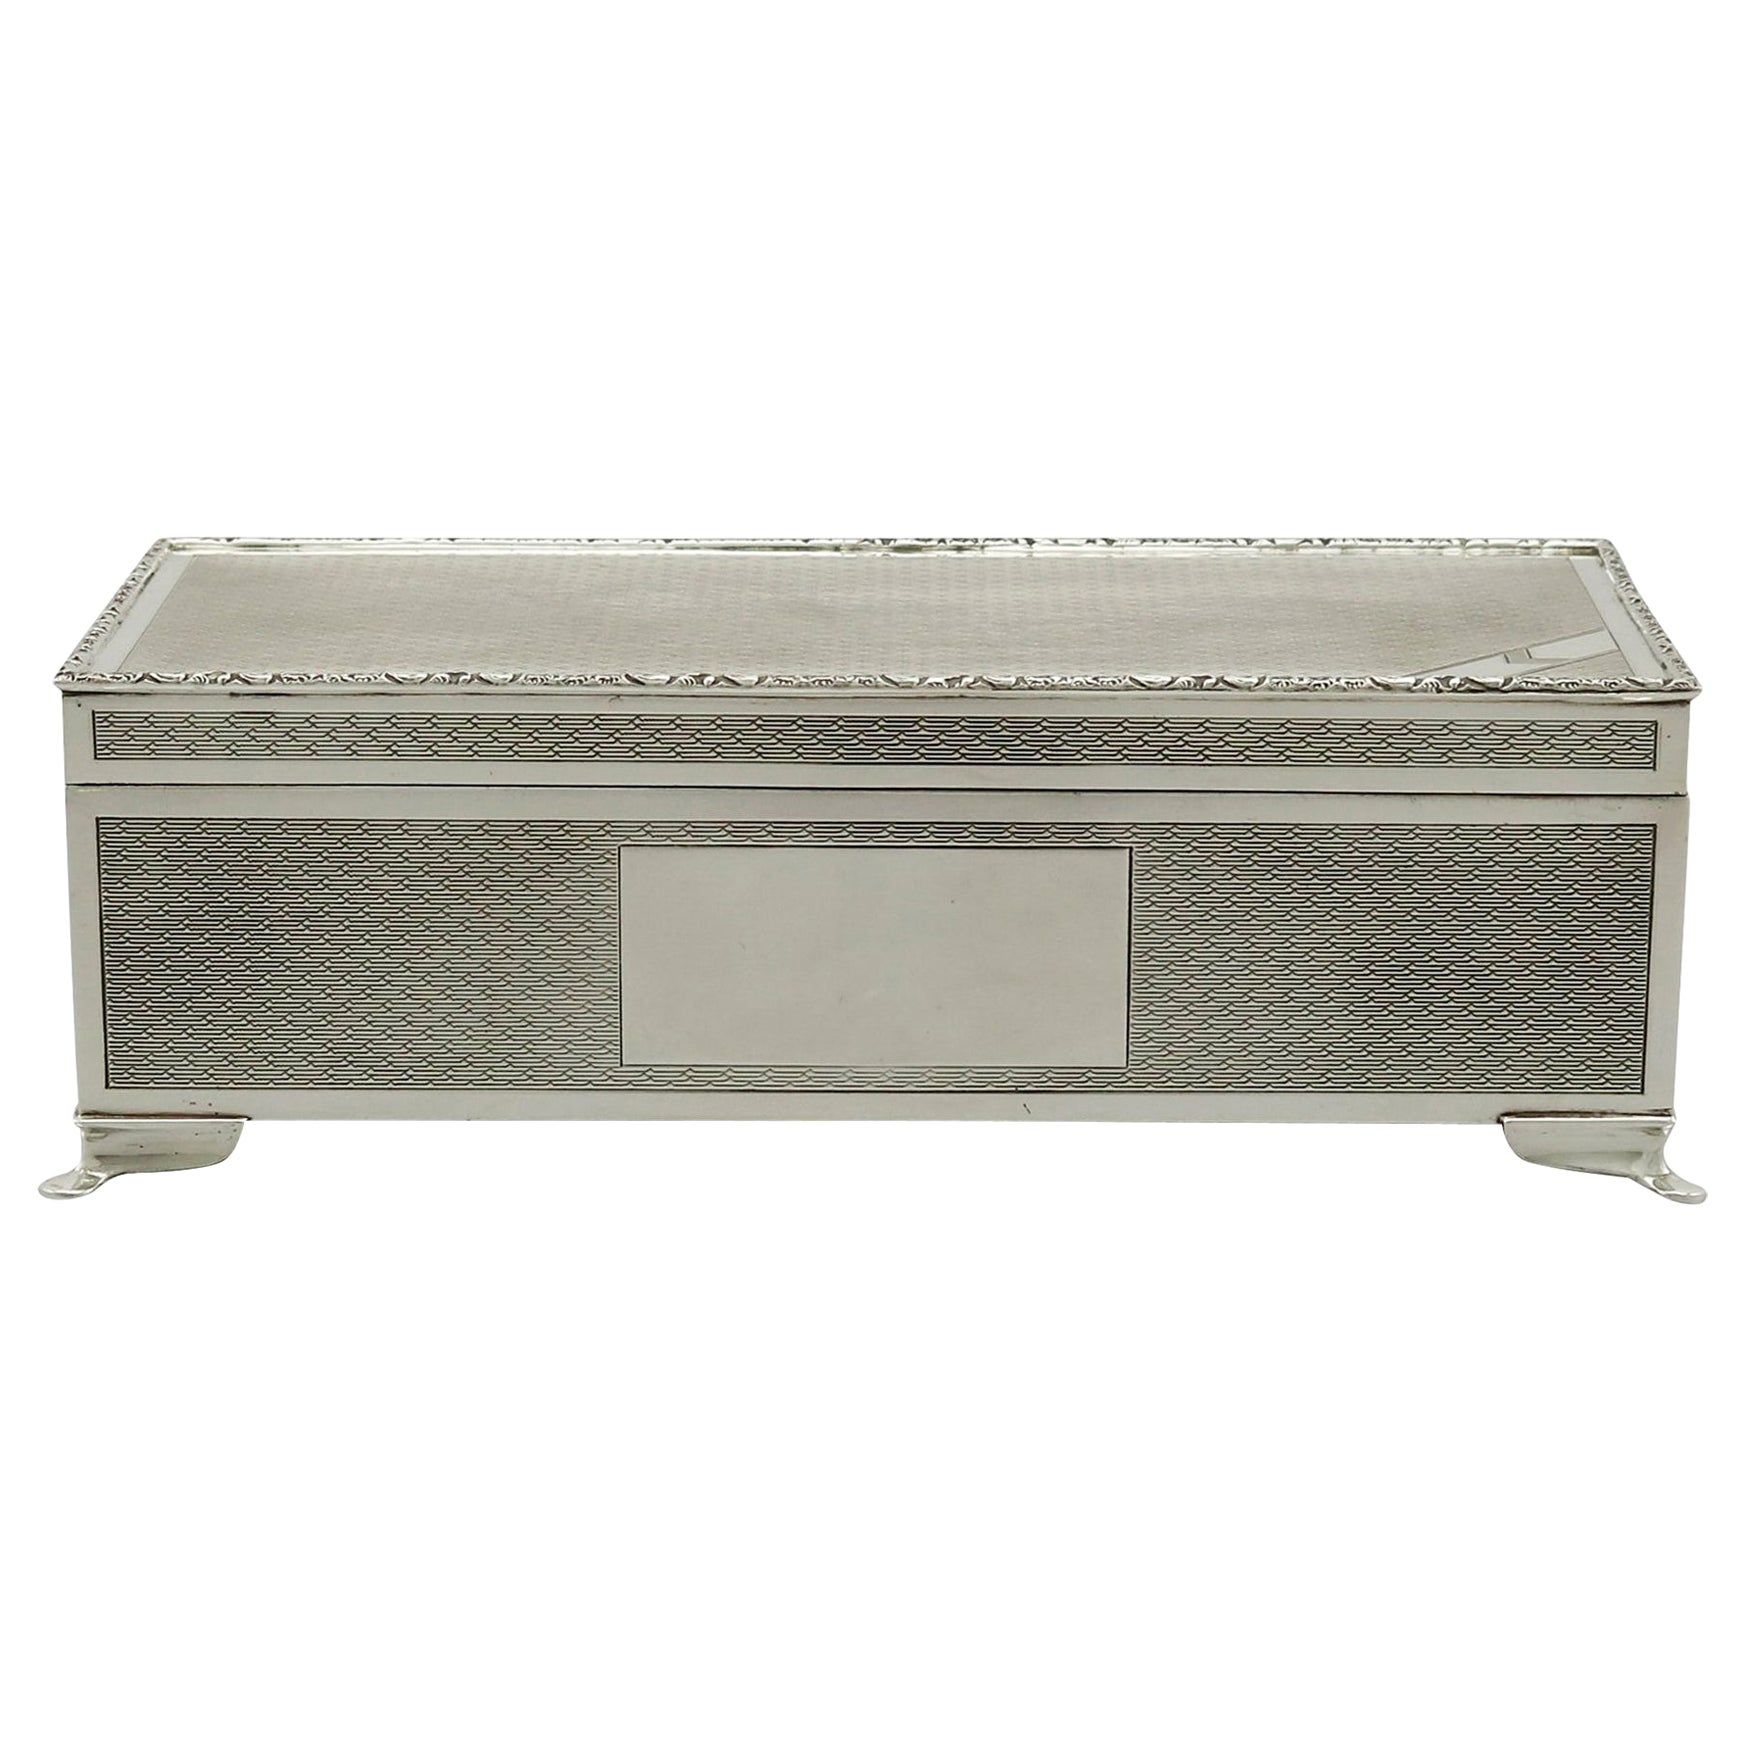 1970s Sterling Silver Cigarette Jewelry Box by Harman Brothers